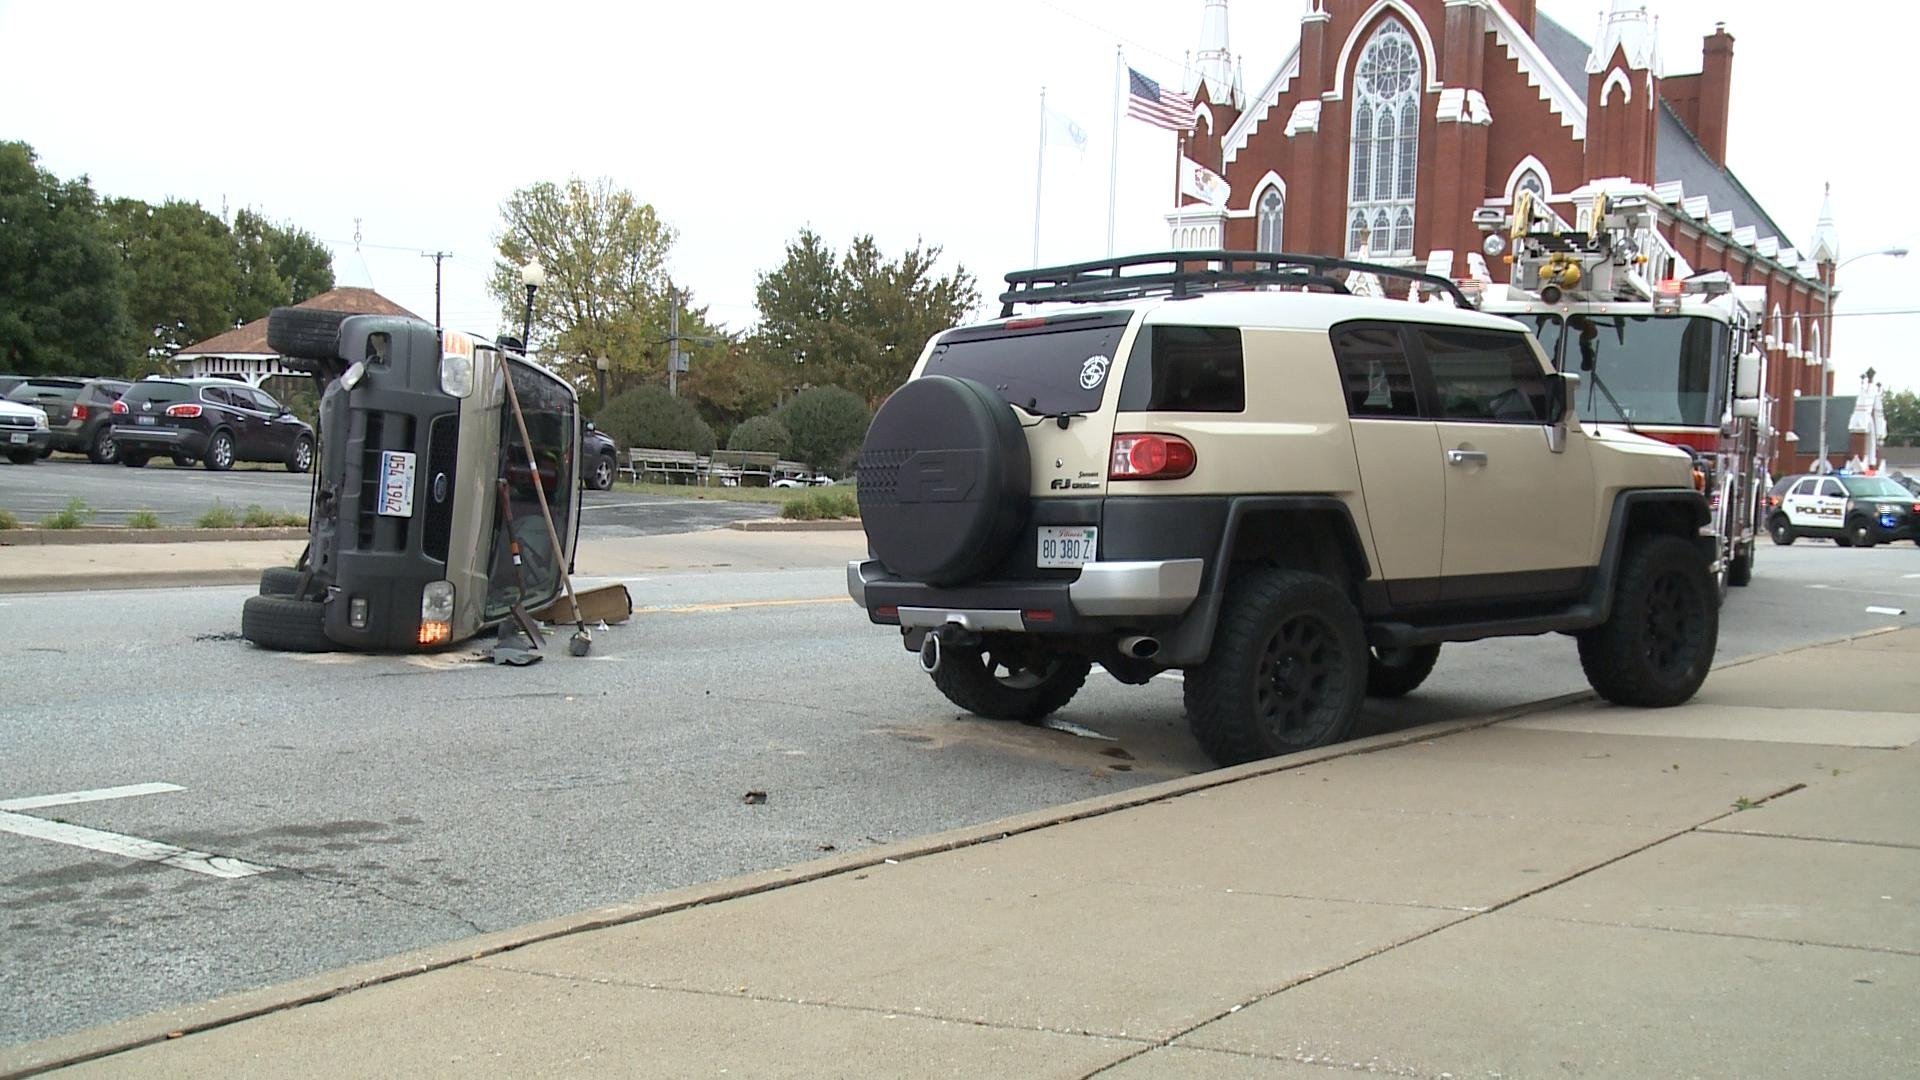 An SUV ended up on its side following a crash in Quincy Wednesday.